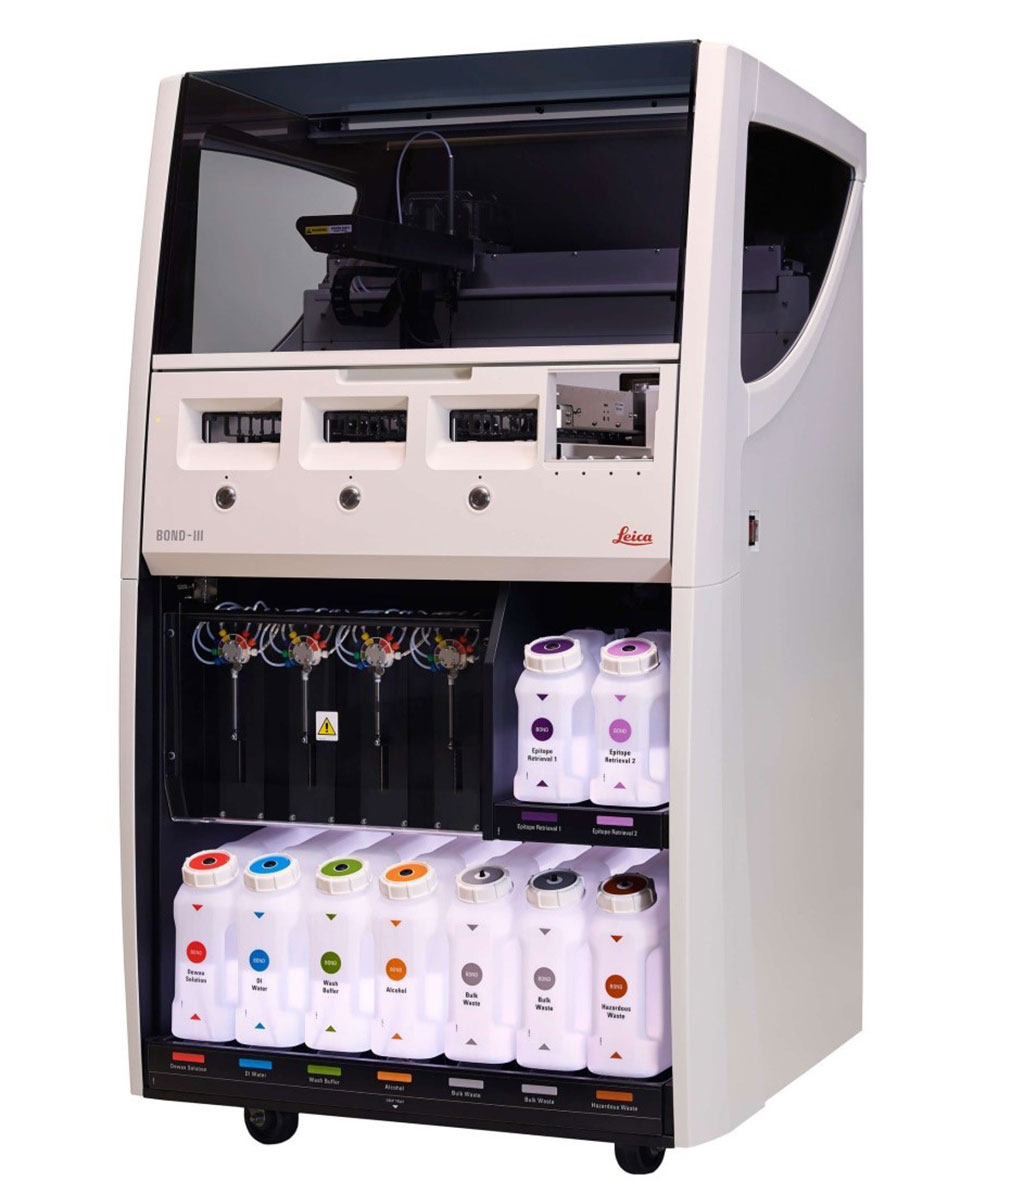 Image: An automated Leica BOND-III immunostainer (Photo courtesy of Leica Biosystems)